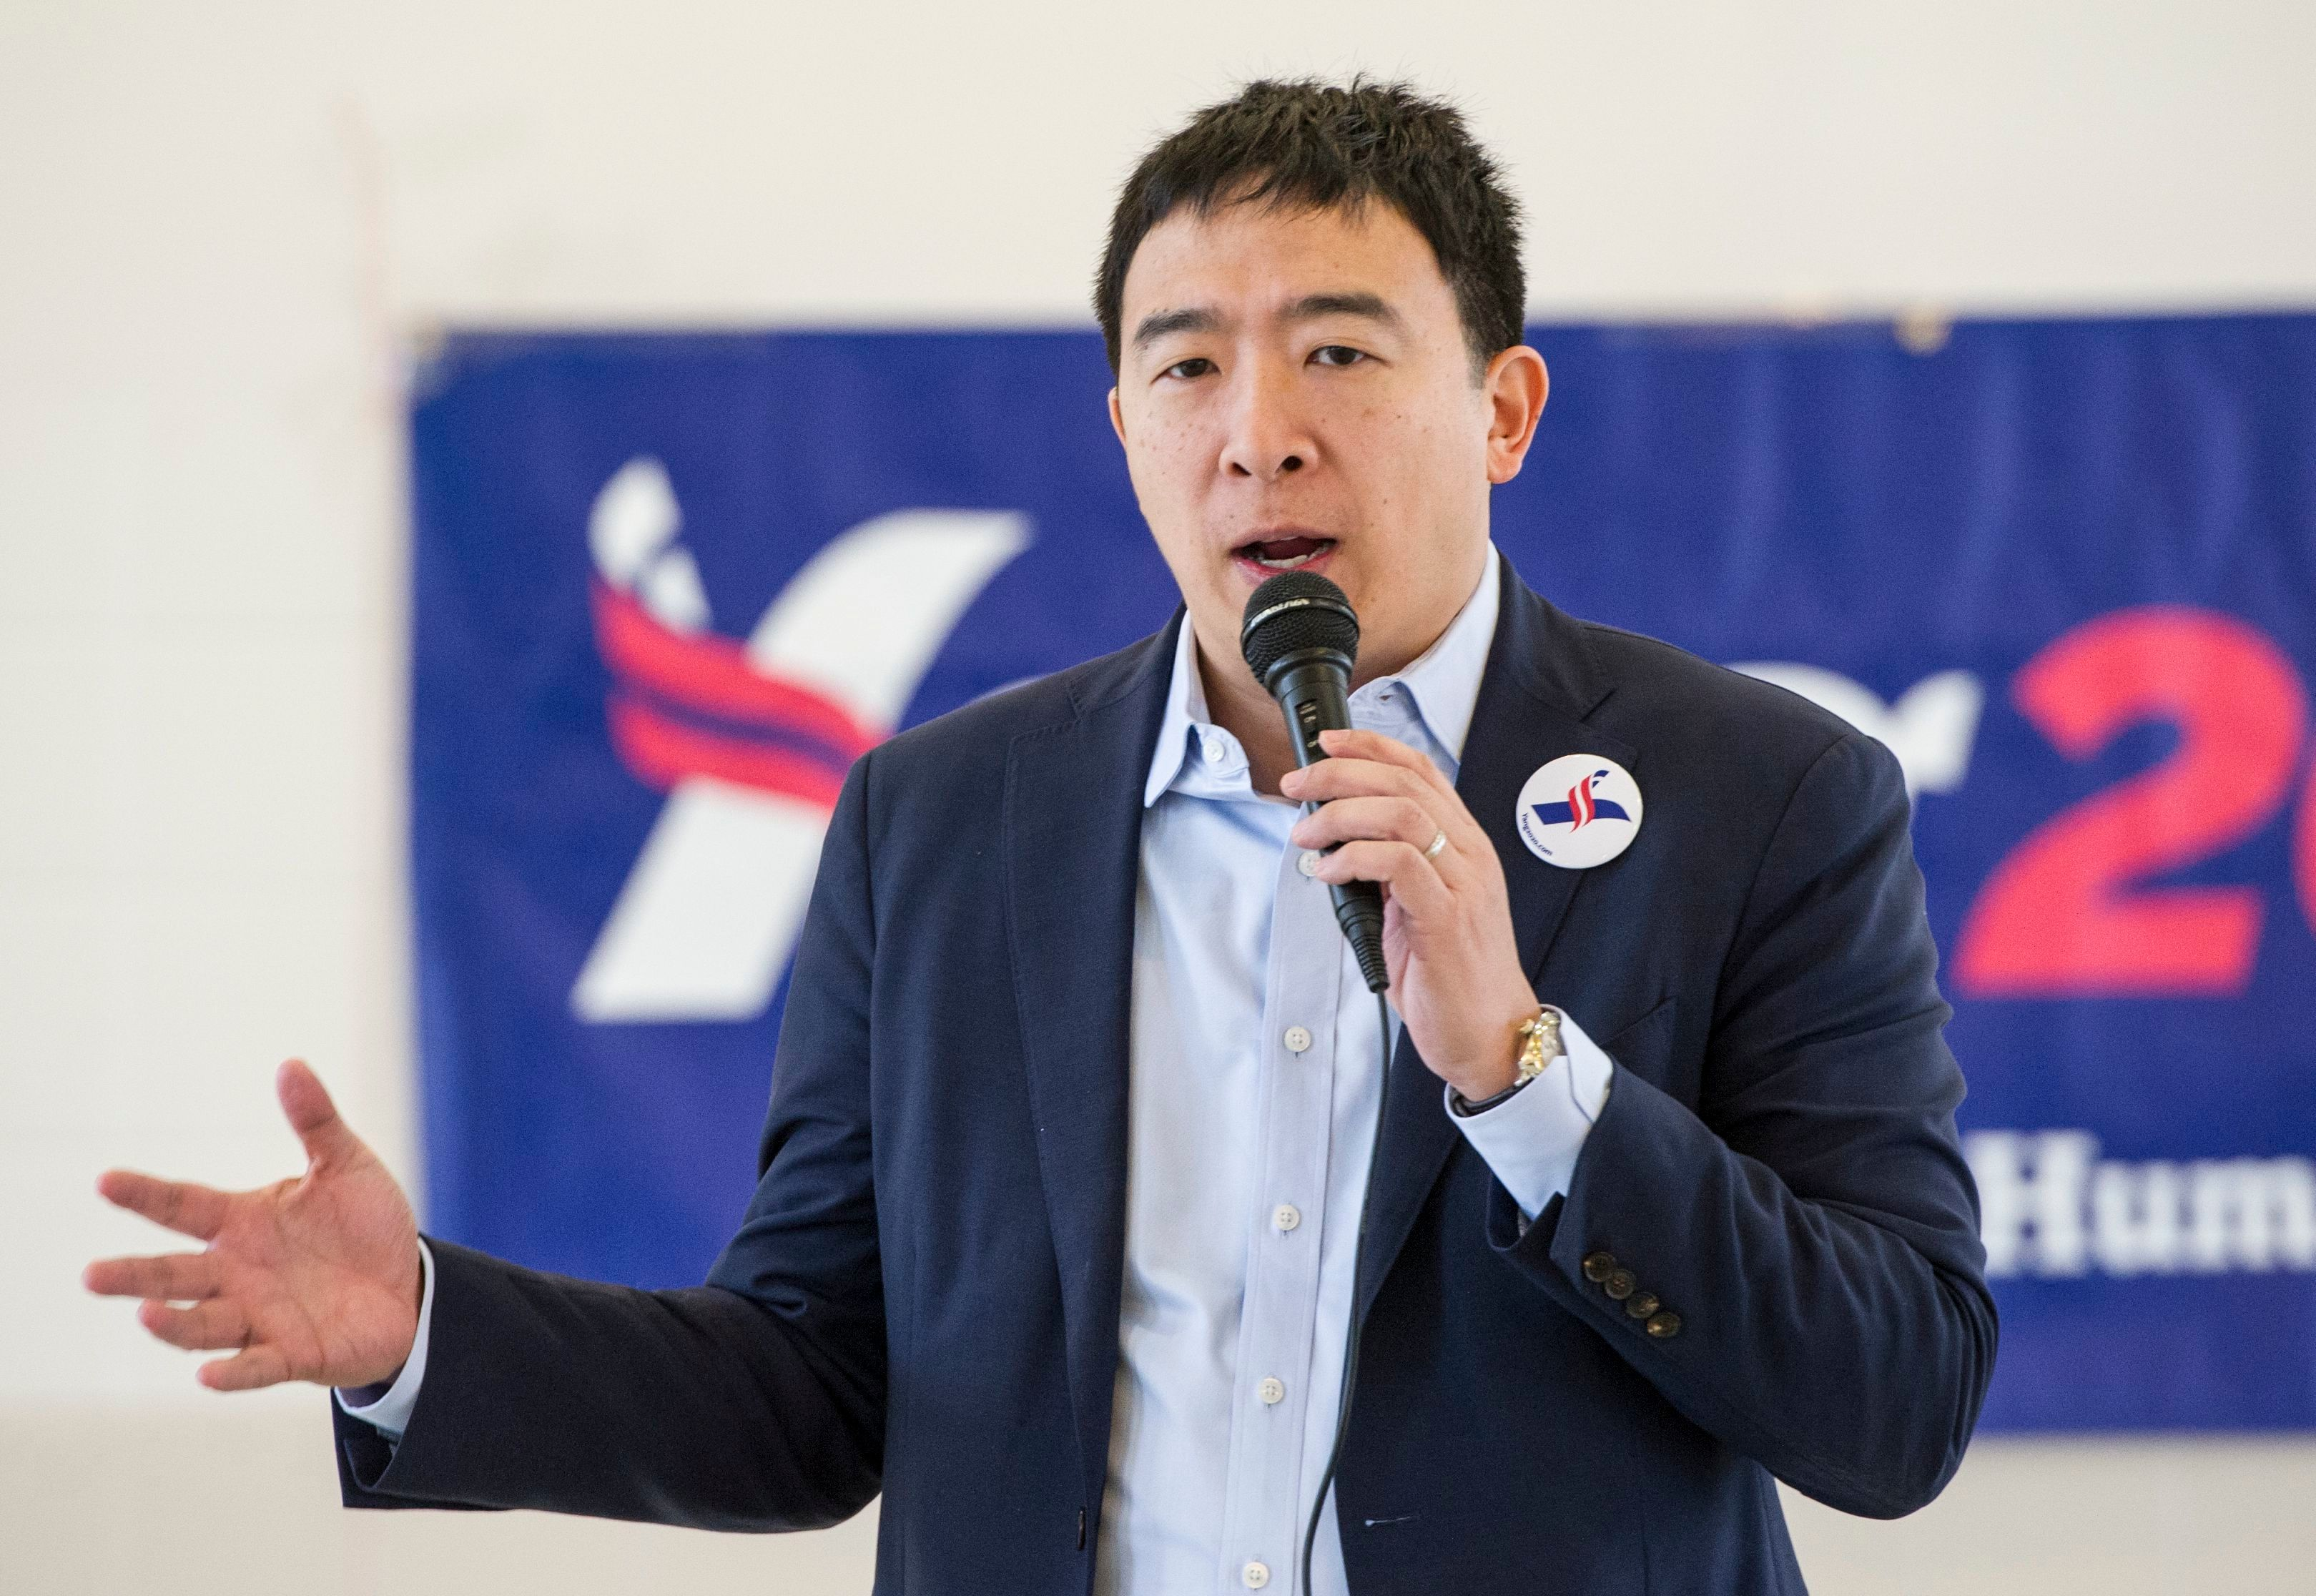 2020 Candidate Andrew Yang Takes a Stand Against … Circumcision